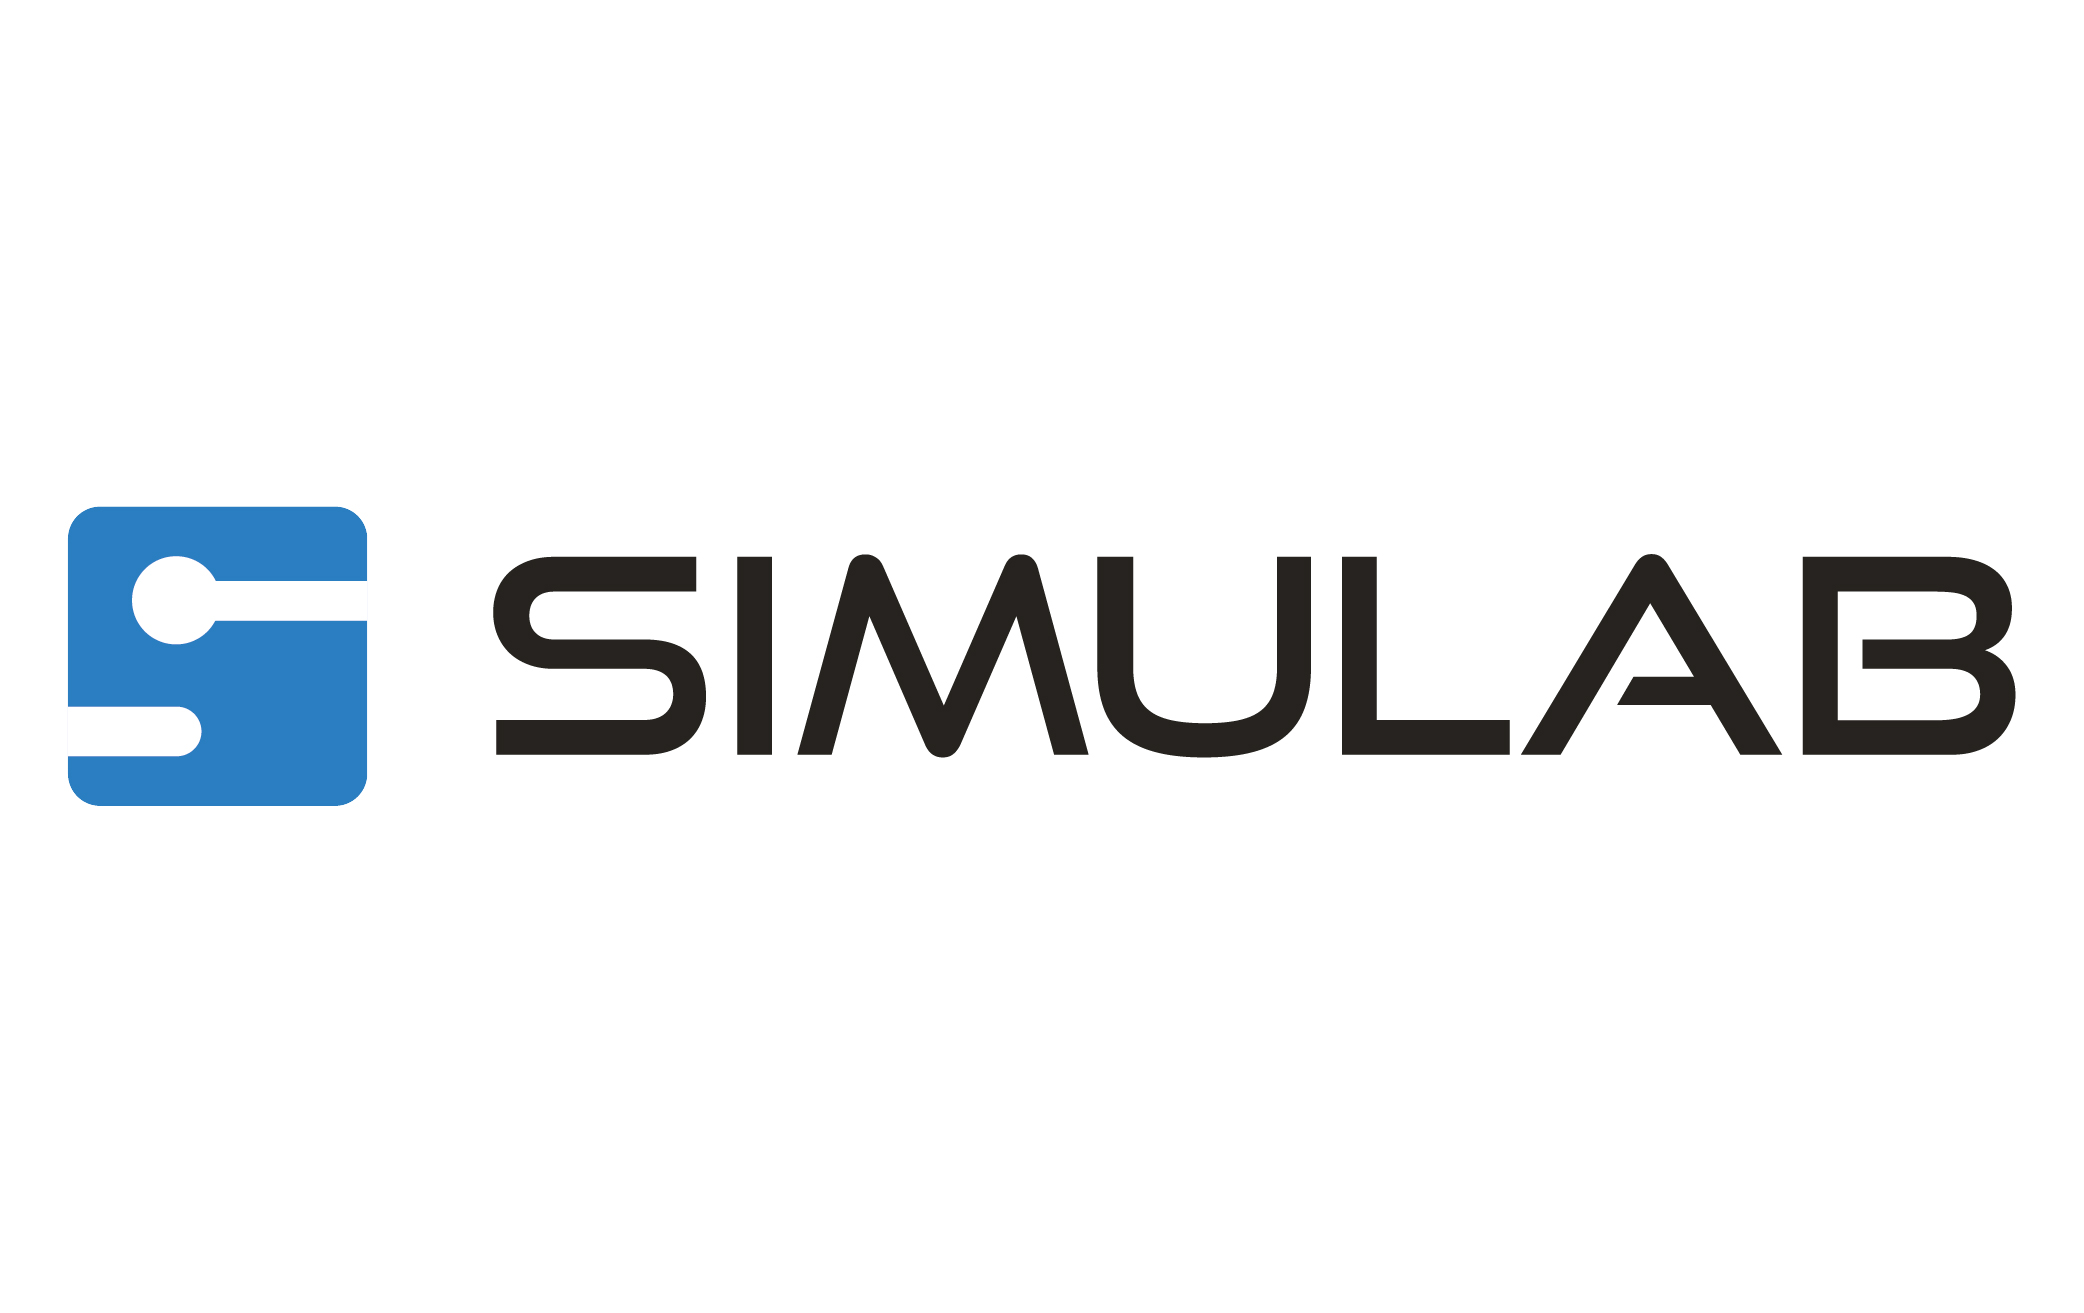 Simulab Microplan's software for simulated tests